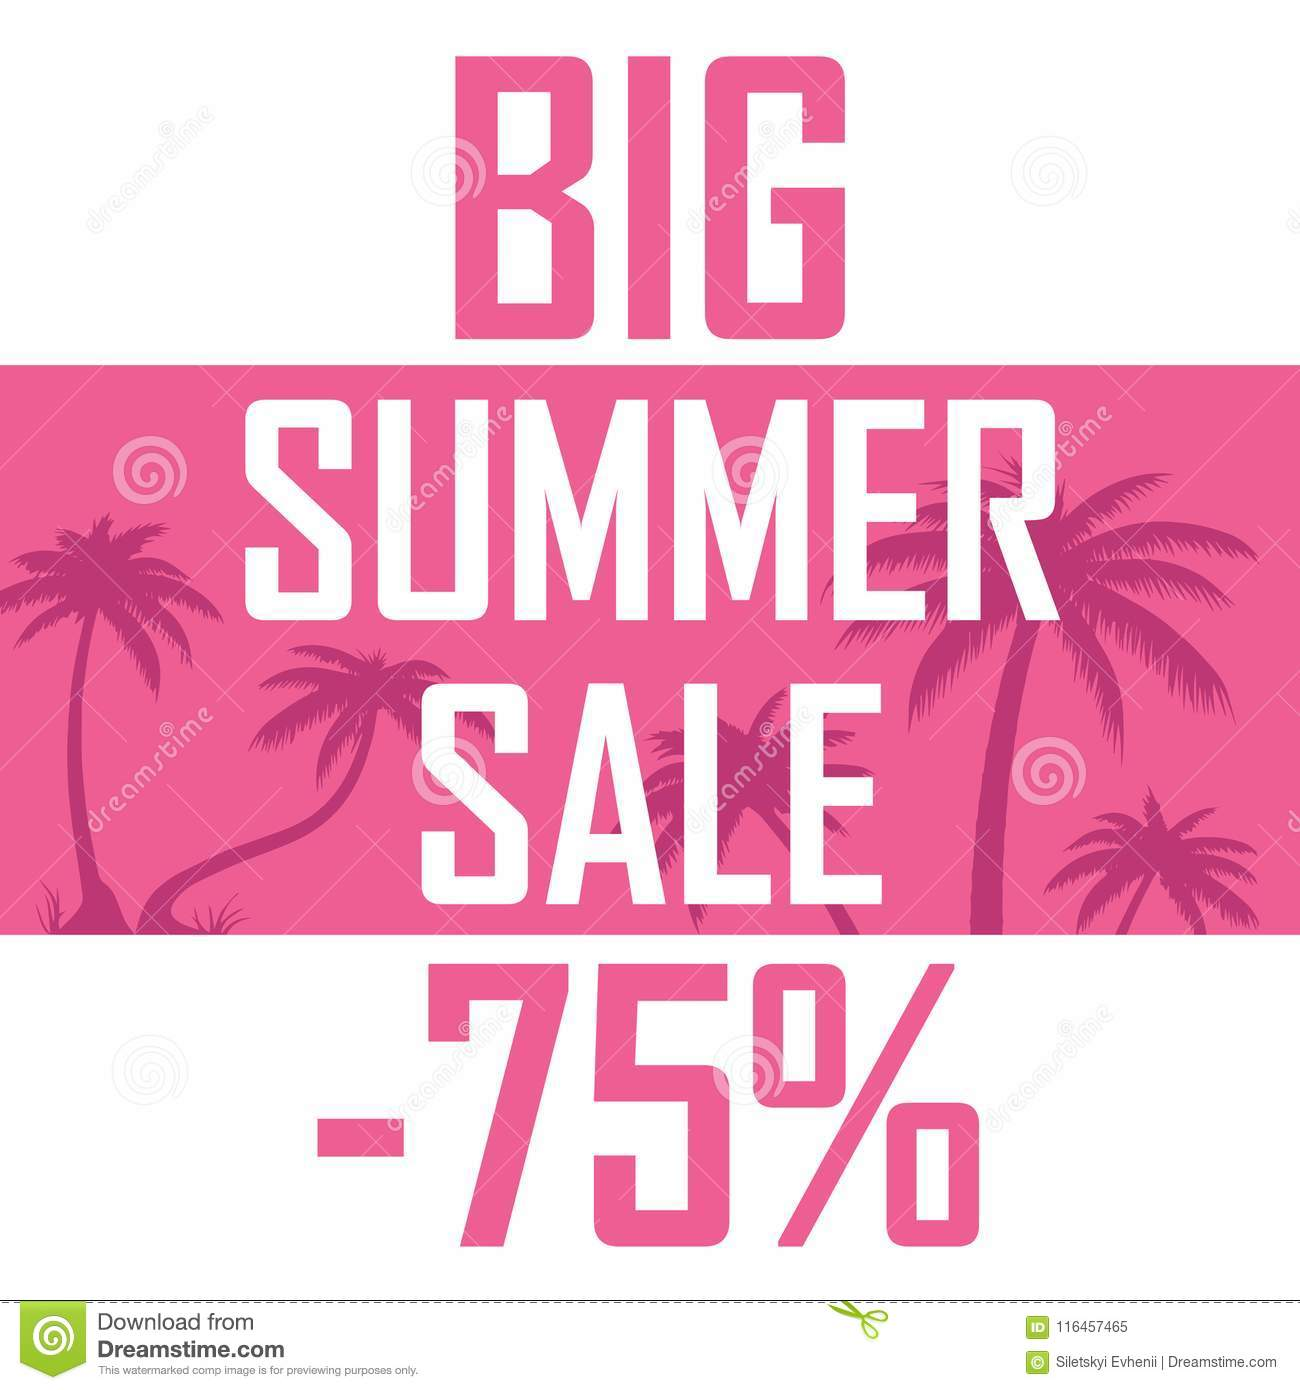 Sale of summer goods, poster discounts for 75 percent